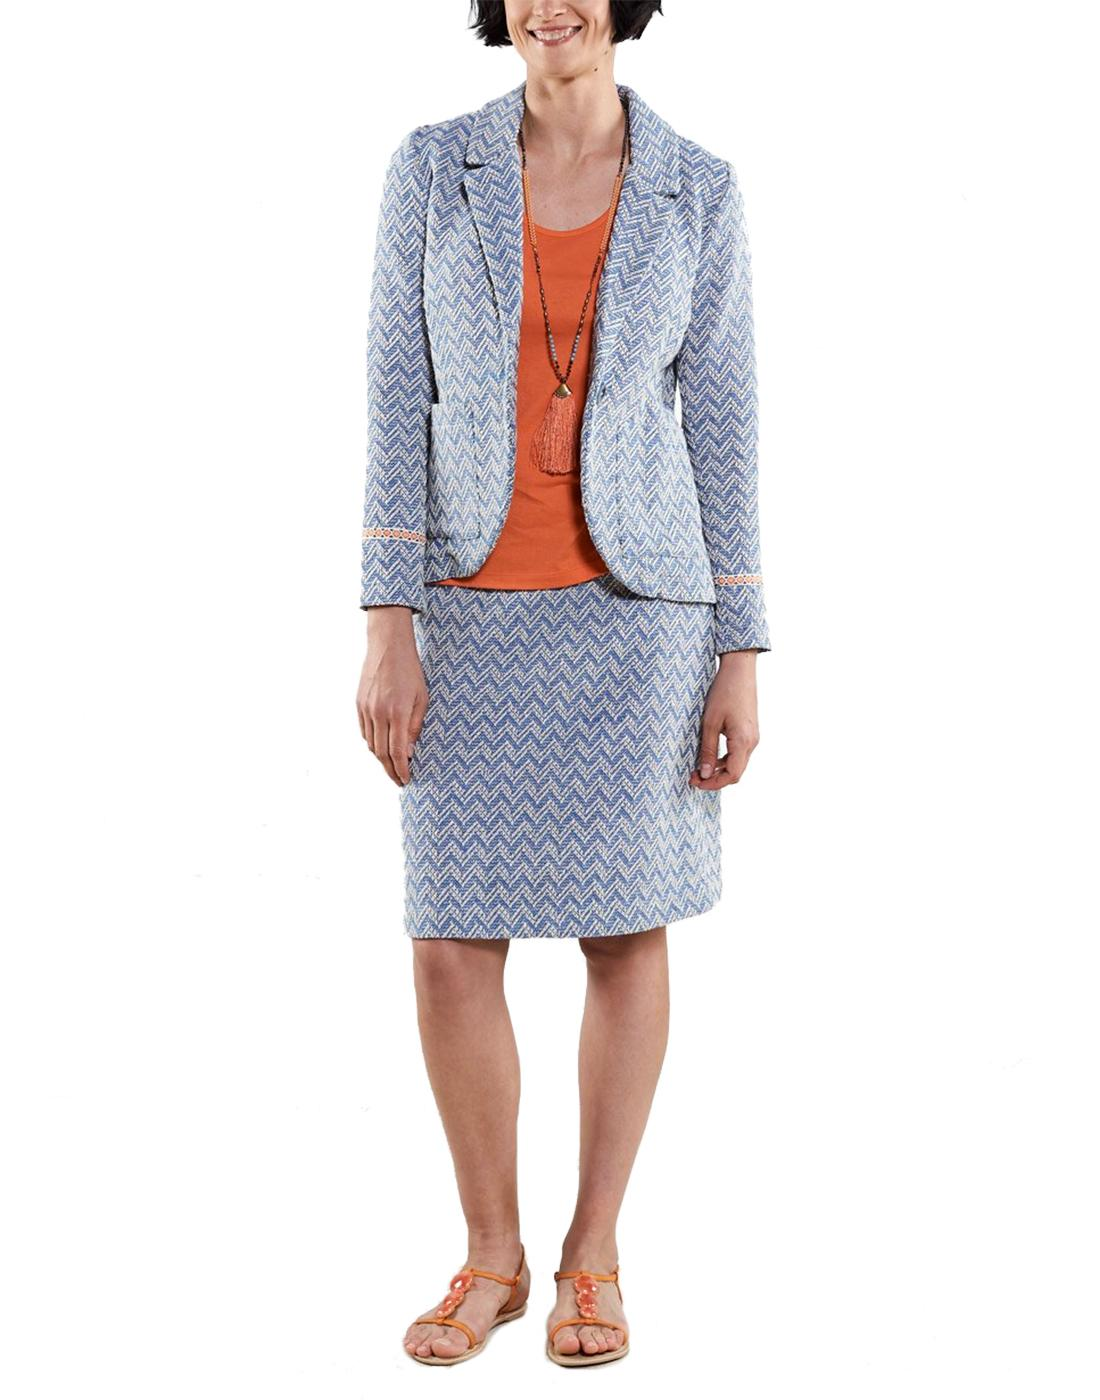 NOMADS Womens Retro Handloom Tailored Skirt Suit